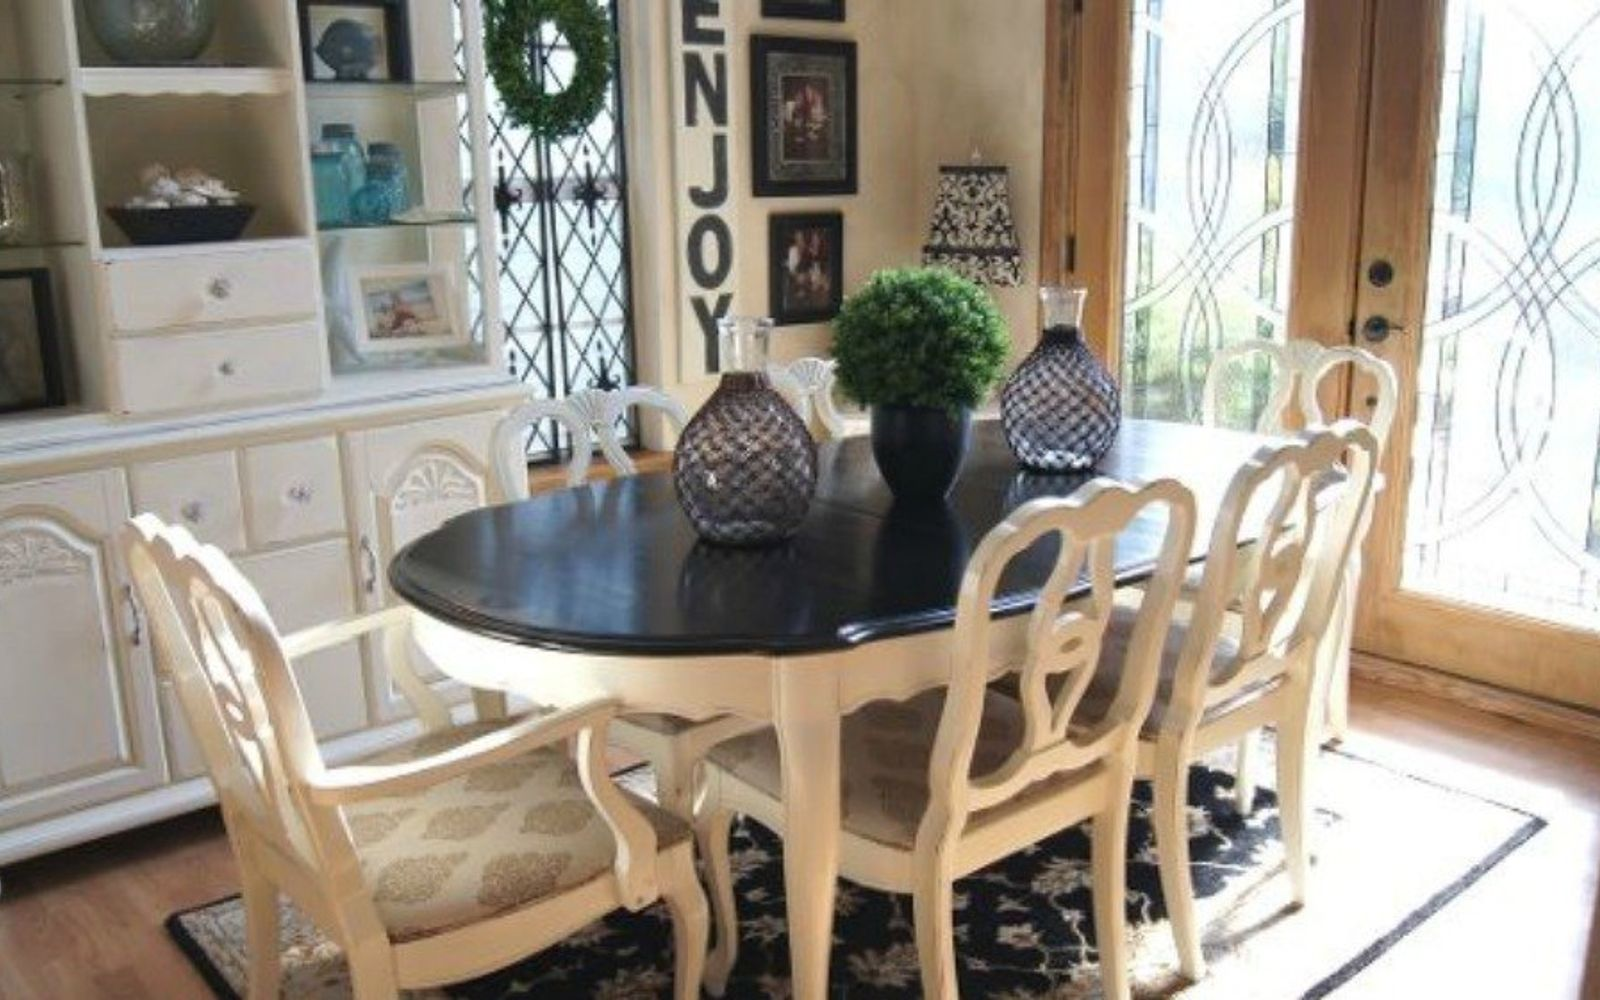 99+ ideas for painting dining room furniture - 25 dining table ideas Dining Table Painting Ideas